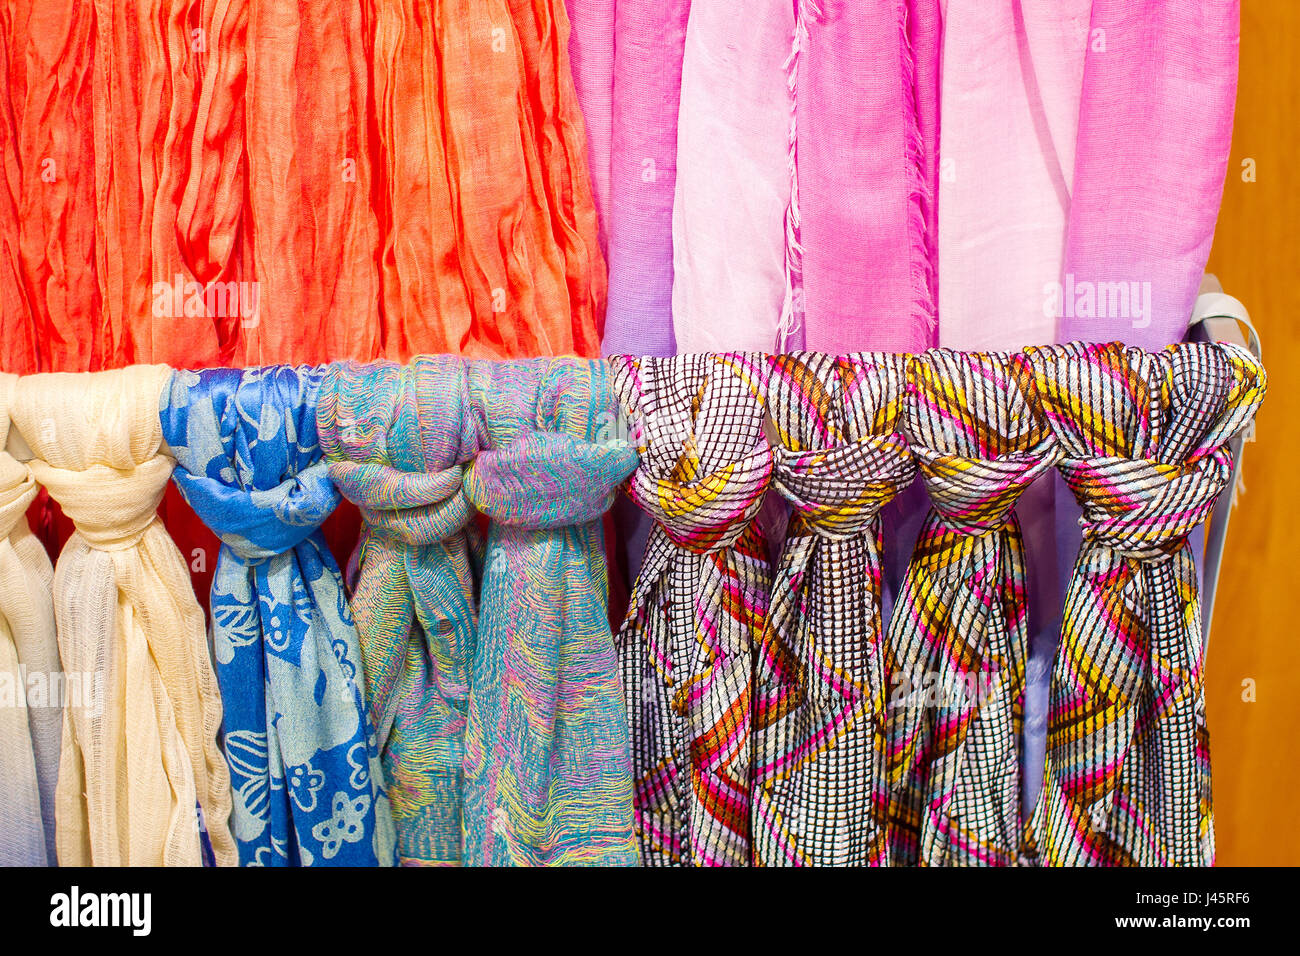 Come Appendere Un Foulard foulard colorati immagini & foulard colorati fotos stock - alamy